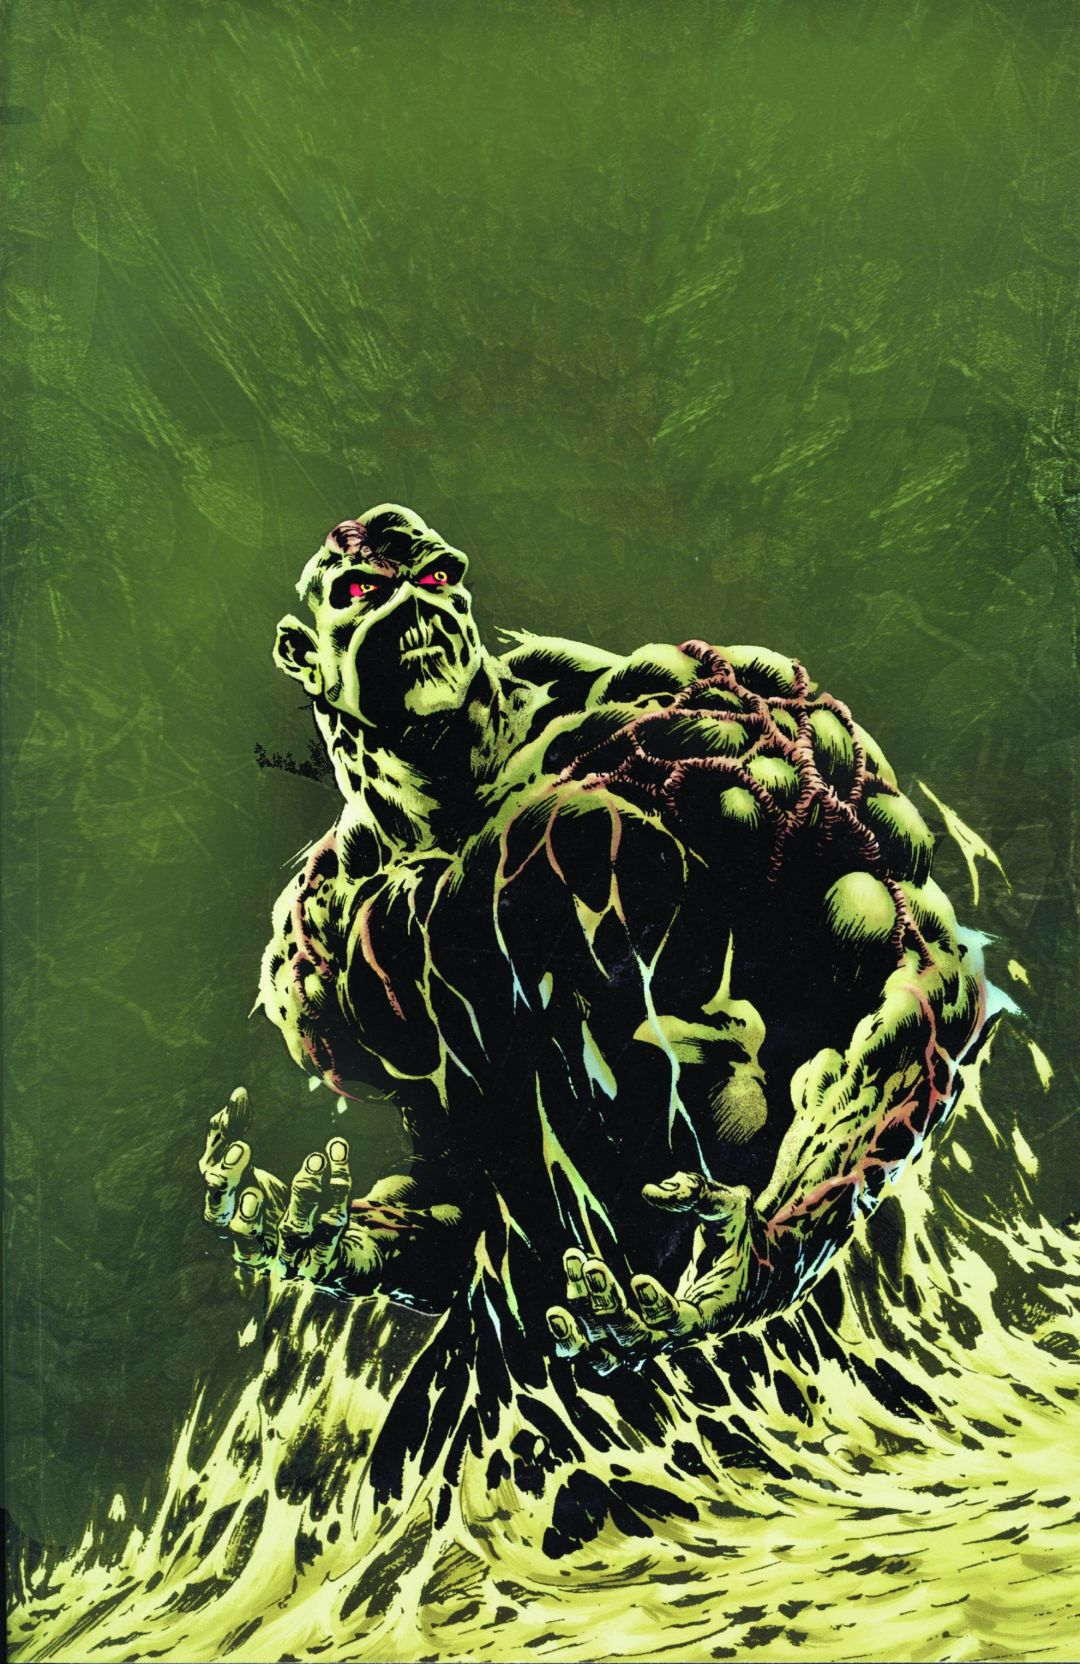 140 Swamp Thing Android Iphone Desktop Hd Backgrounds Wallpapers 1080p 4k 1980x3051 2020